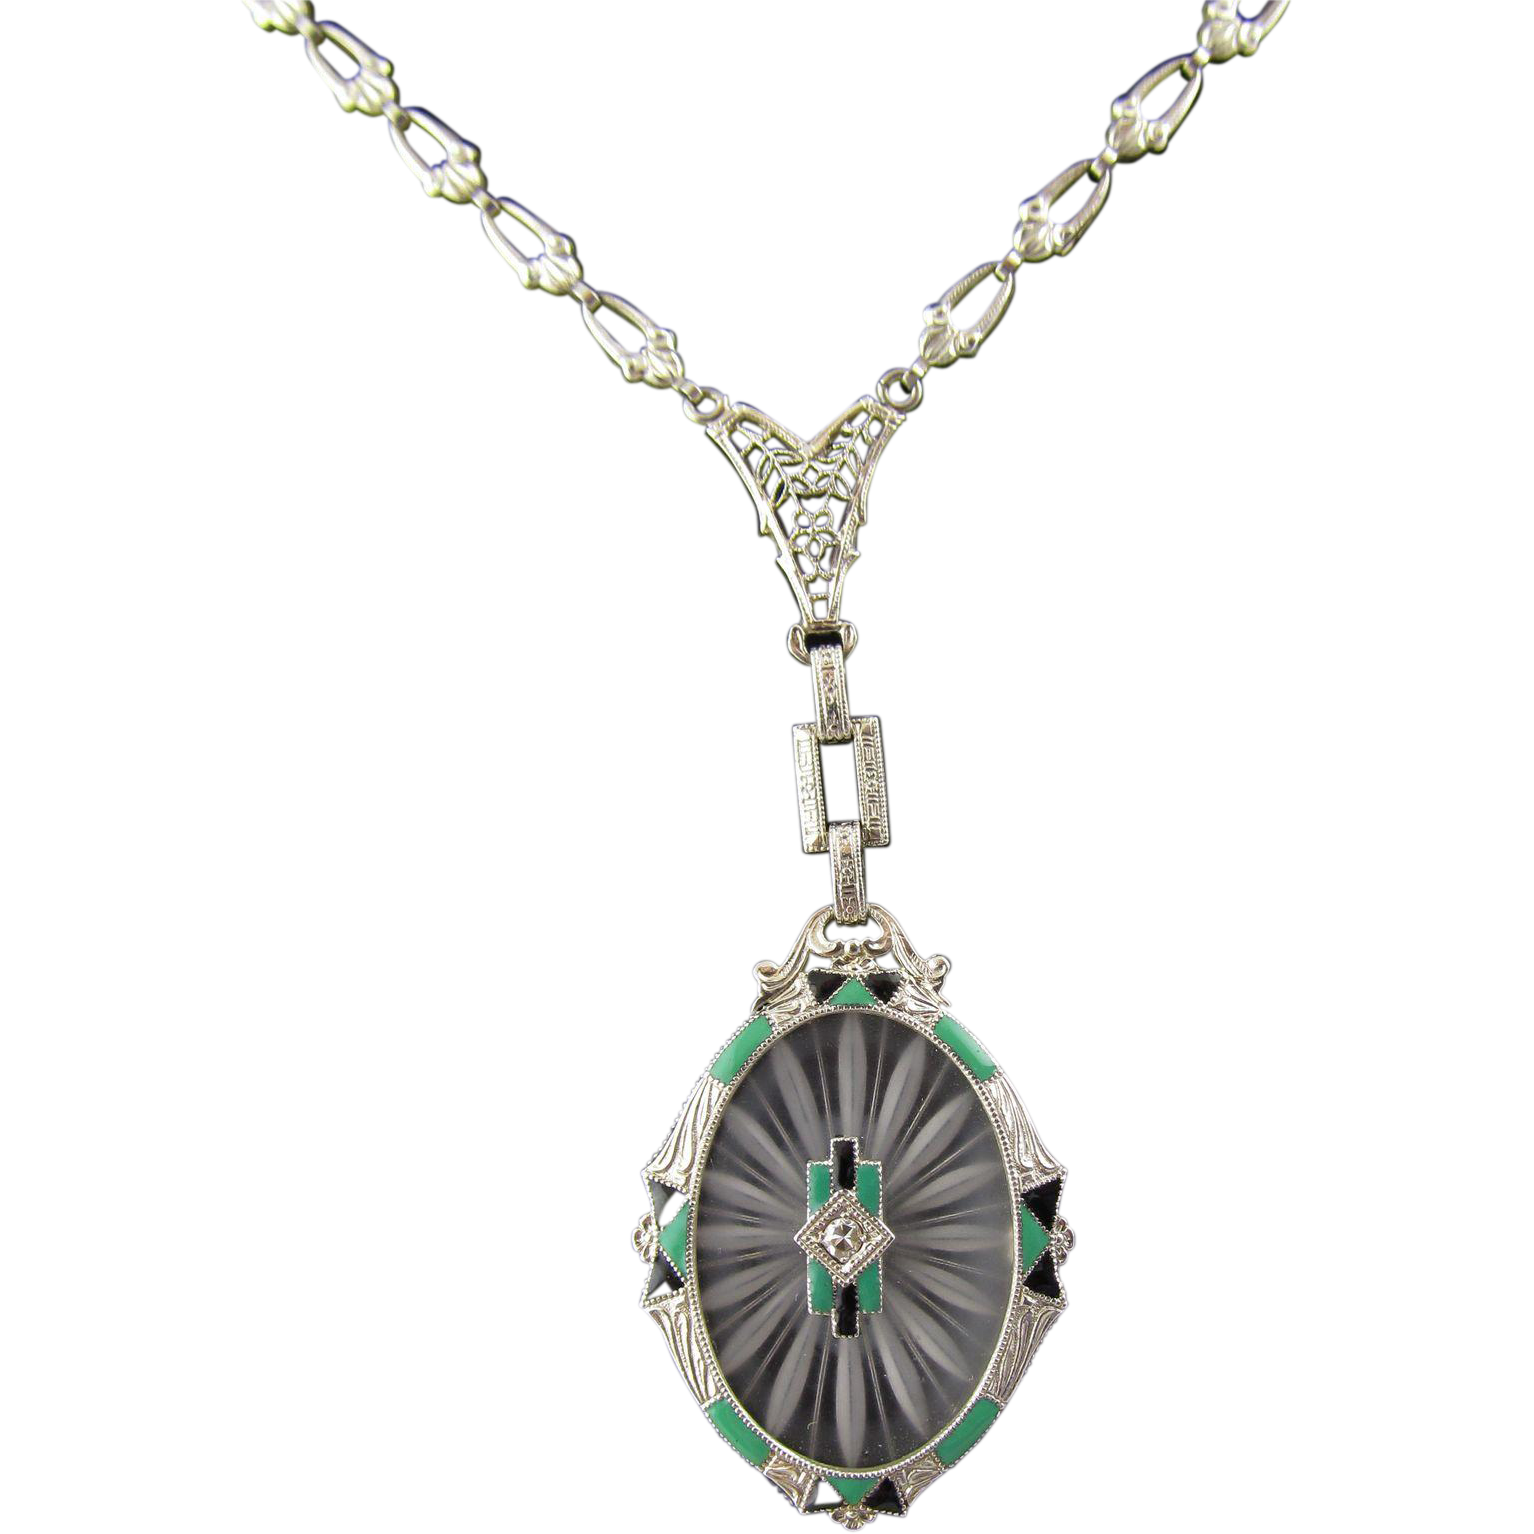 1920's Art Deco Enamel Camphor Glass Necklace, 14 Karat White Gold